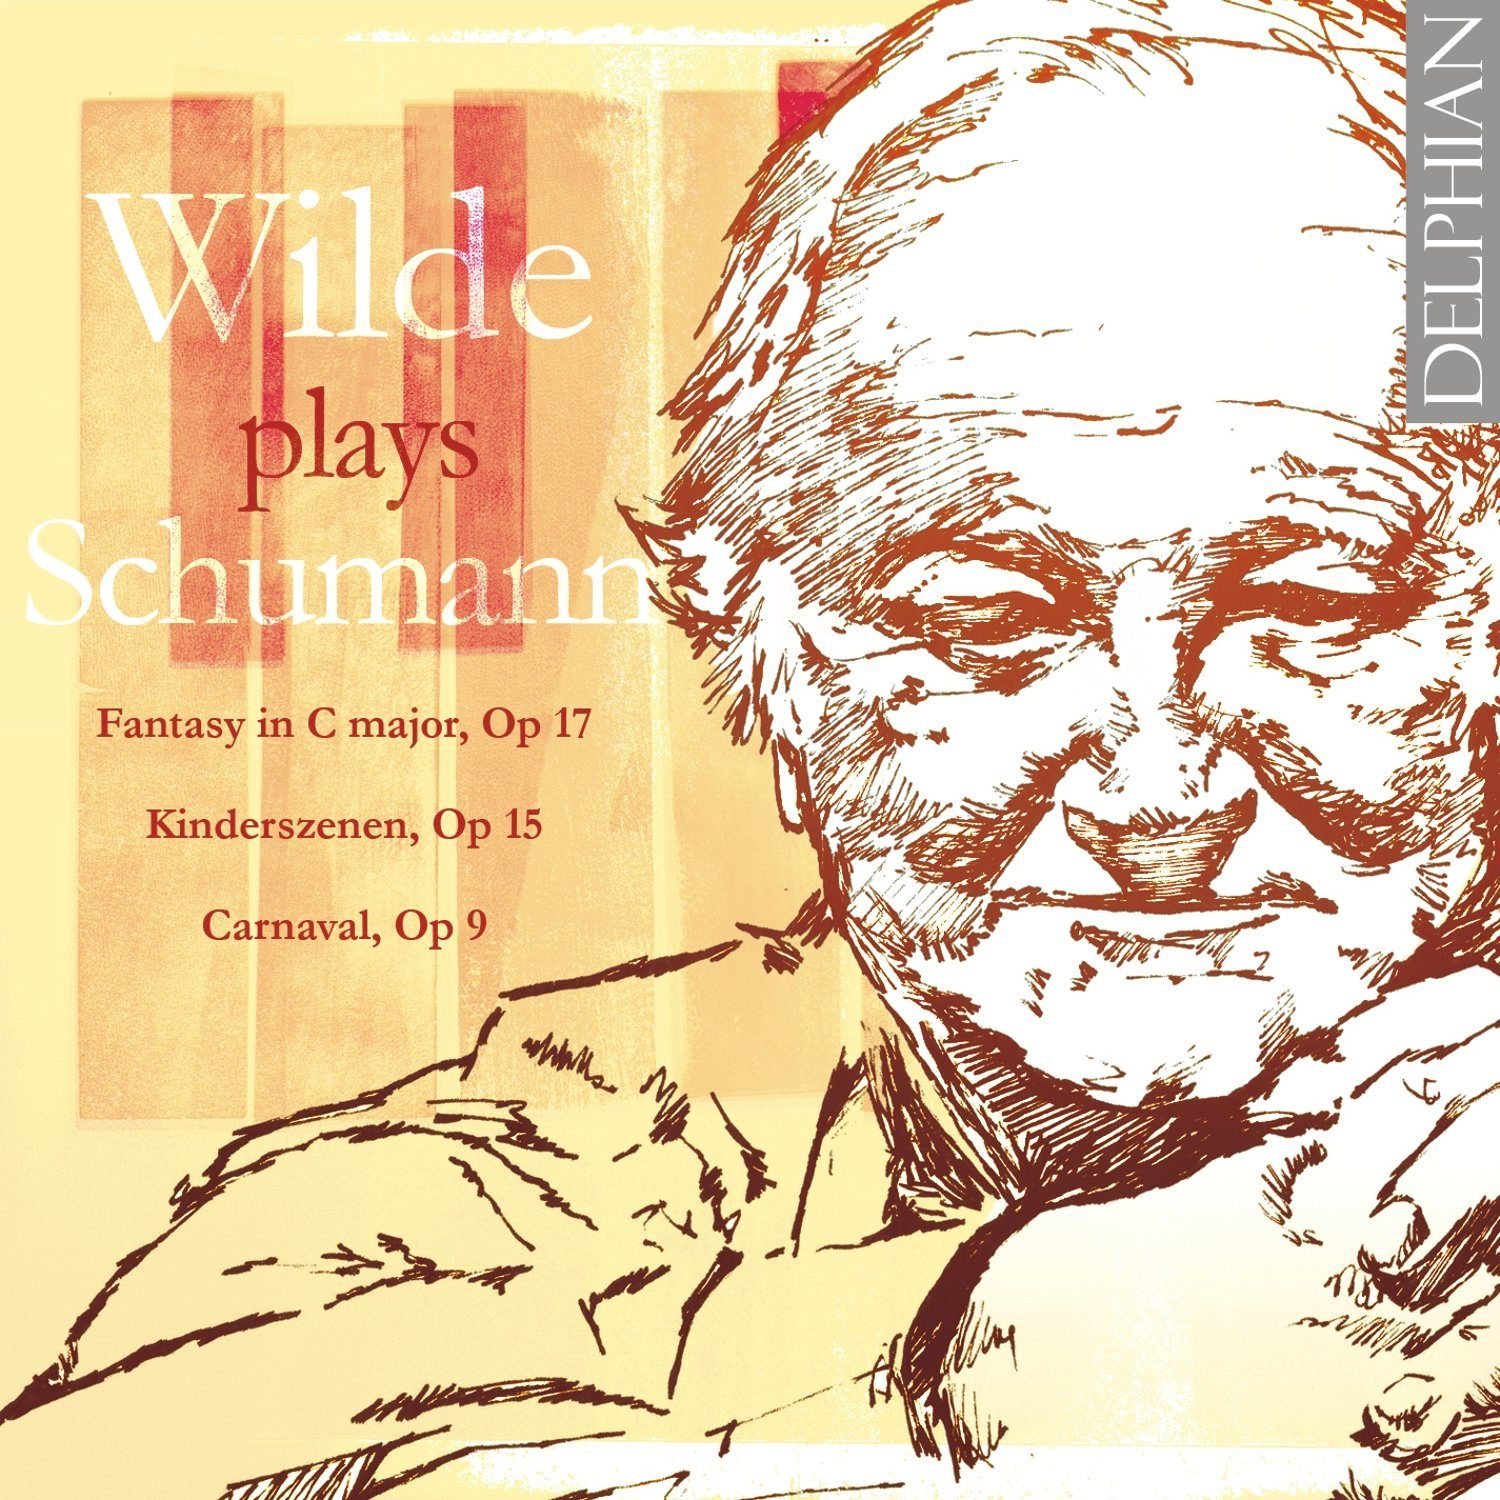 Wilde plays Schumann CD Delphian Records